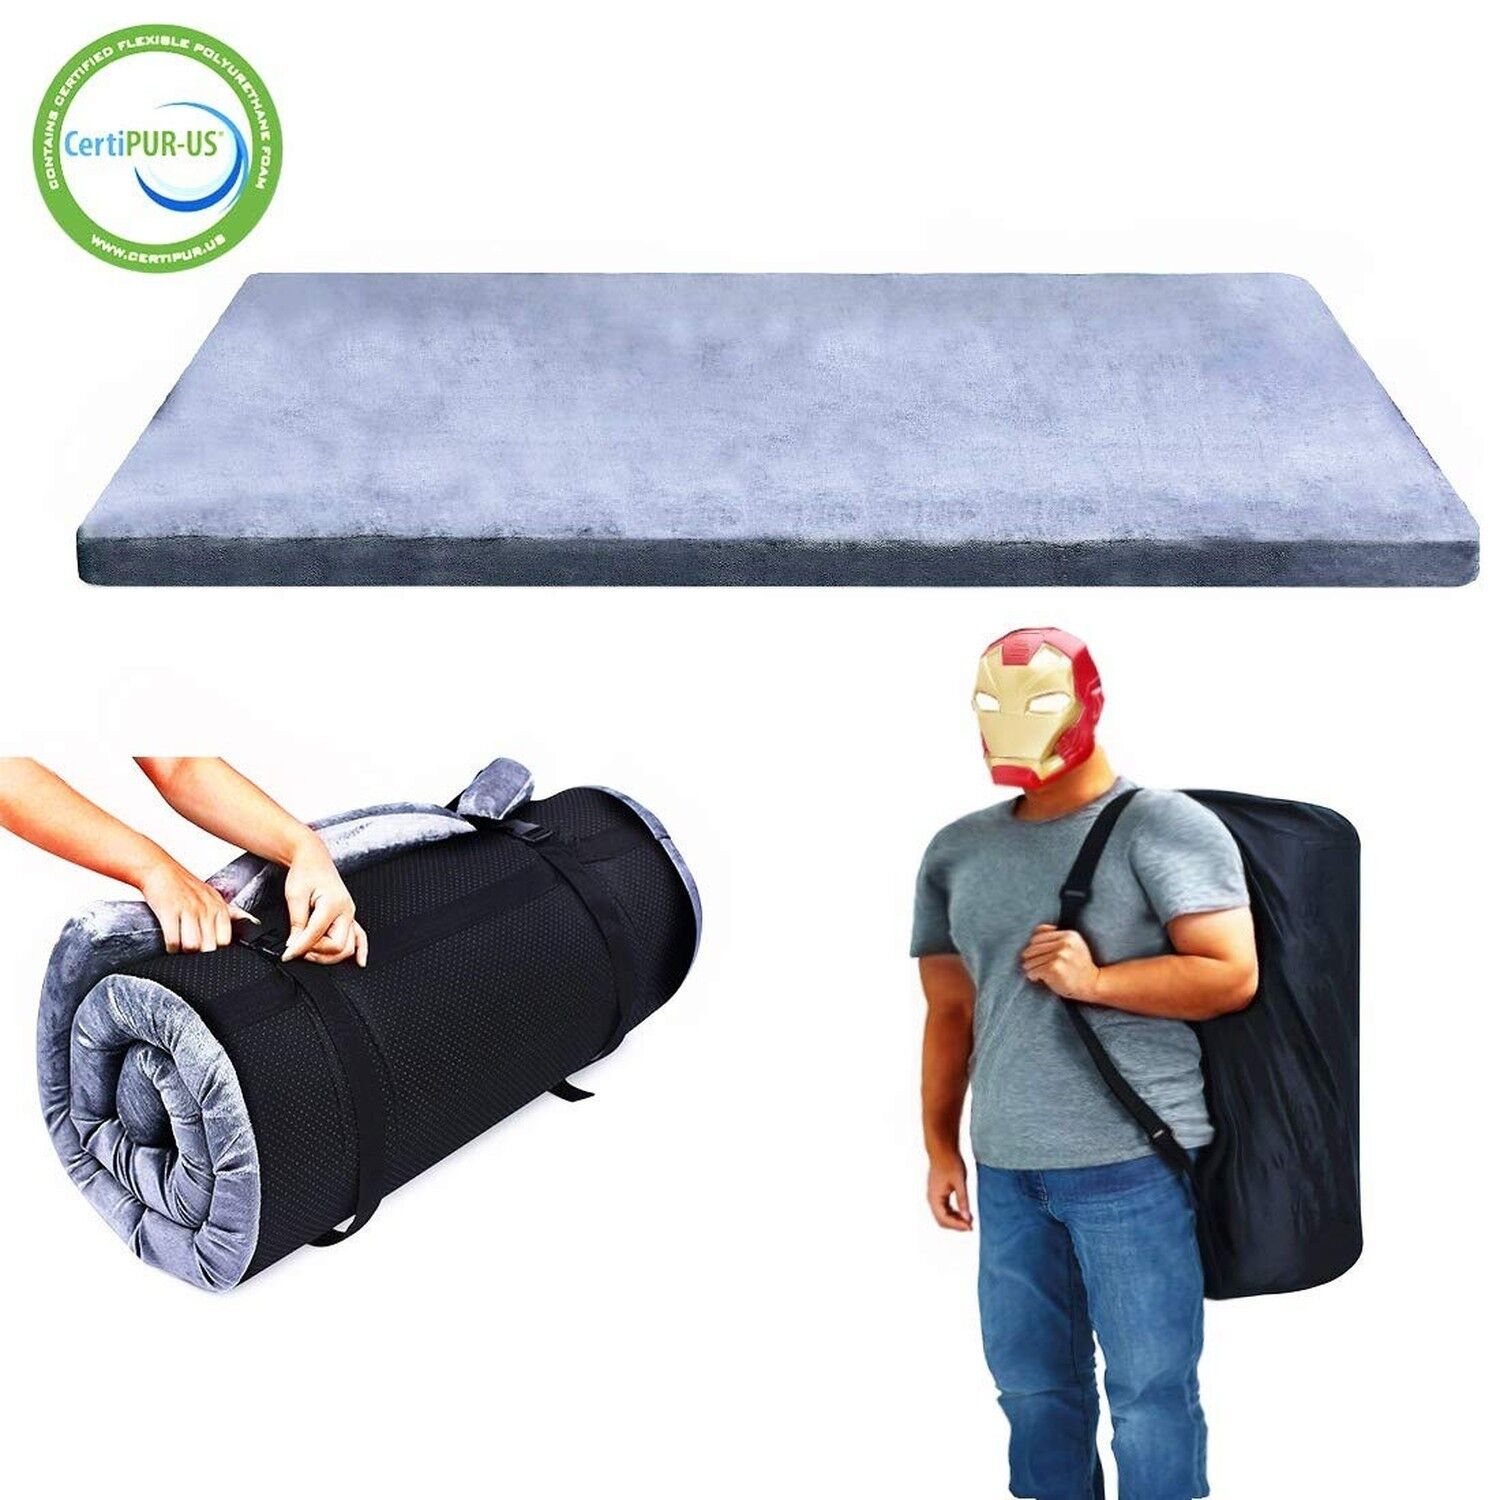 Willpo Certipur-US Memory Foam Camping Mattress 75  x 30  x 2.75  Portable Sle...  hot limited edition